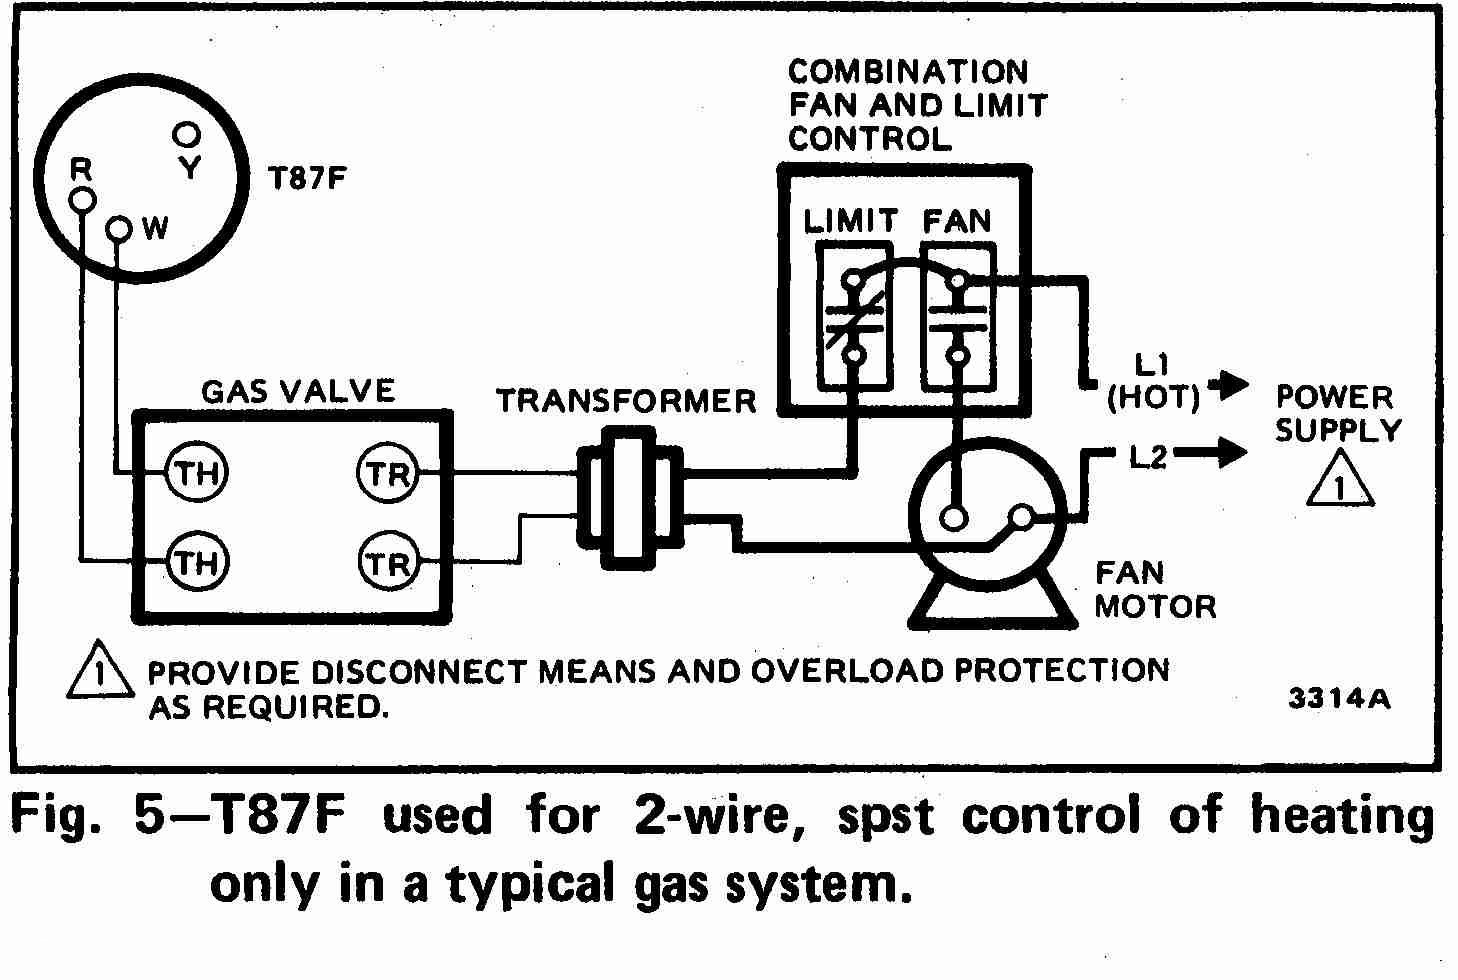 hight resolution of 8 ohm subwoofer wiring diagram wiring libraryrockford fosgate subwoofer wiring wizard wiring 2 8 ohm subwoofer